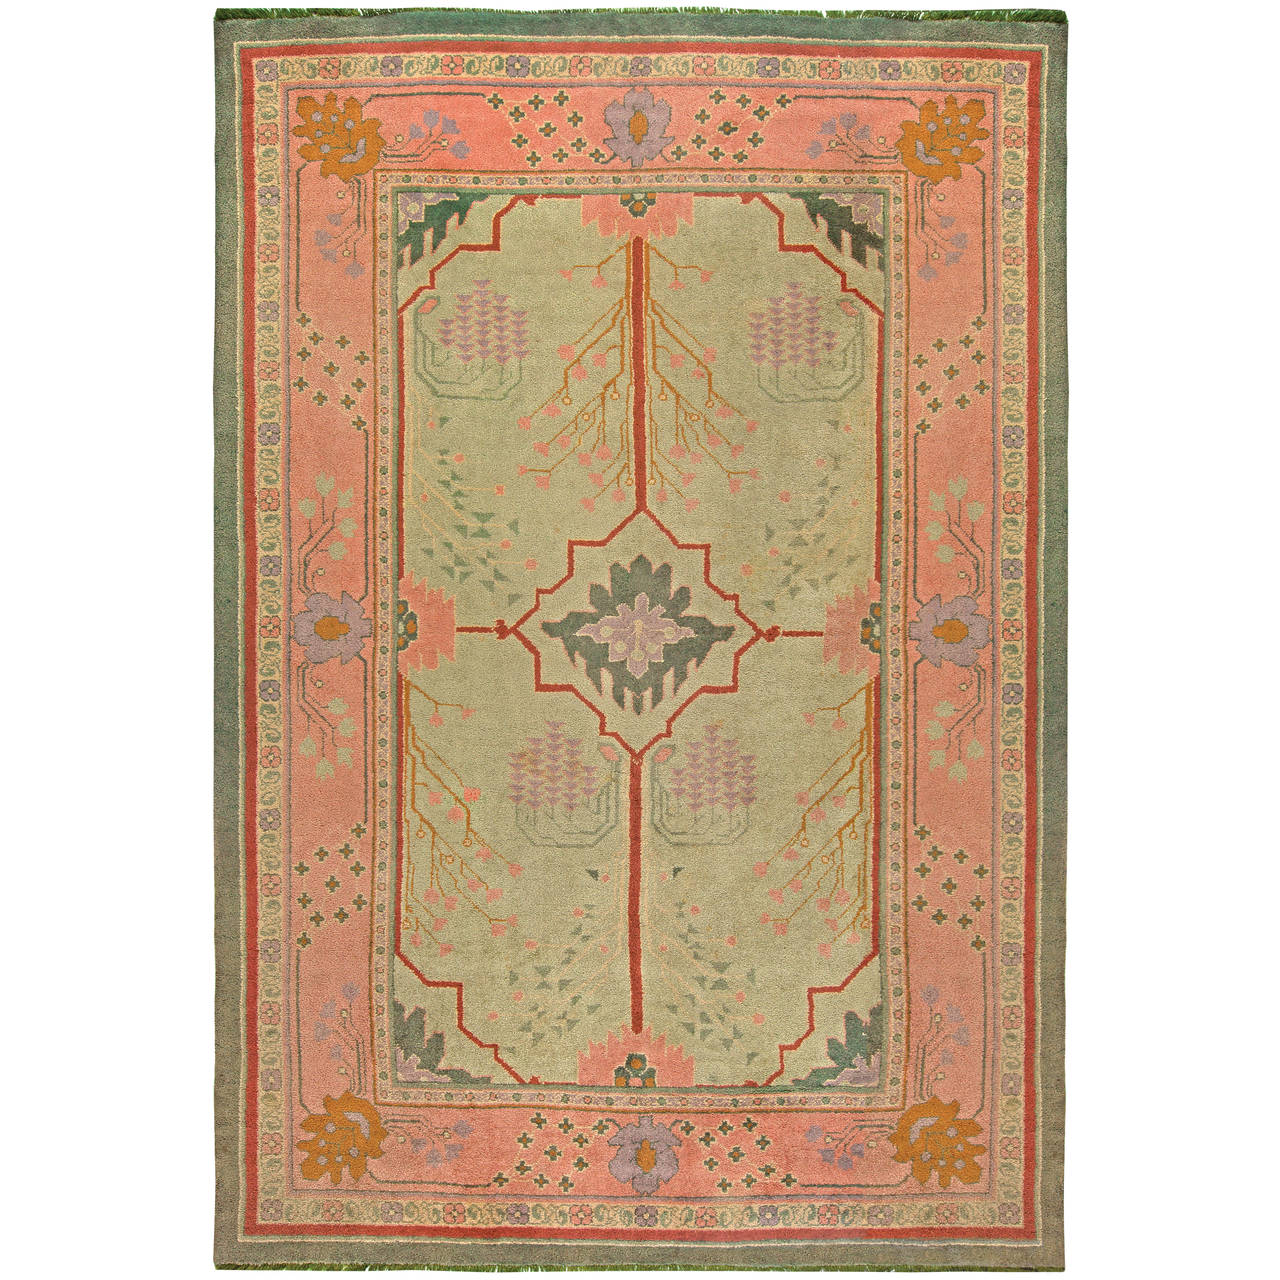 Vintage Arts And Craft Rug At 1stdibs